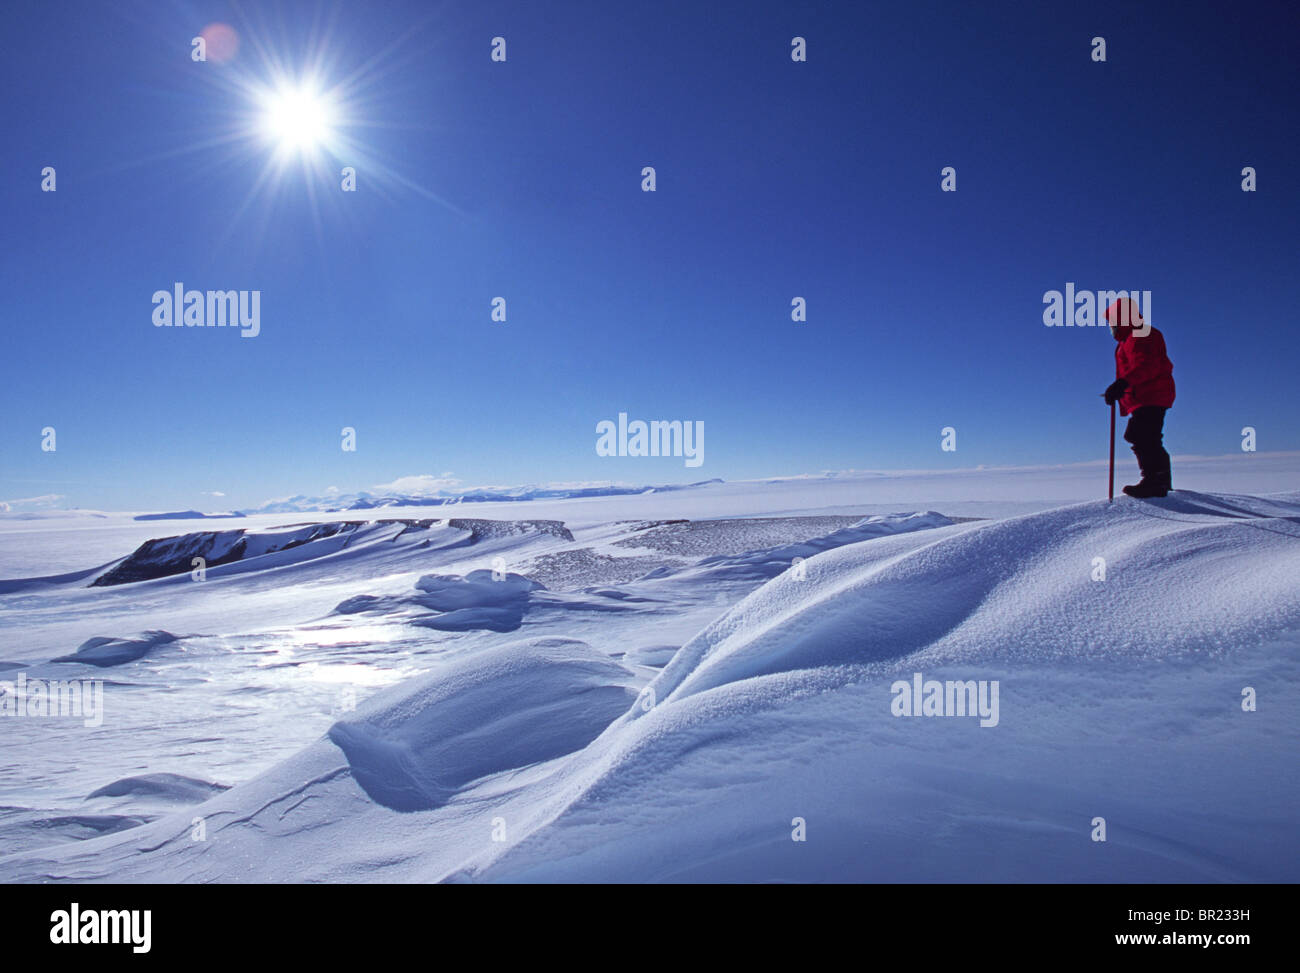 Shaun Norman, Antarctic Mountaineer, searches for a route across the Polar Plateau. - Stock Image